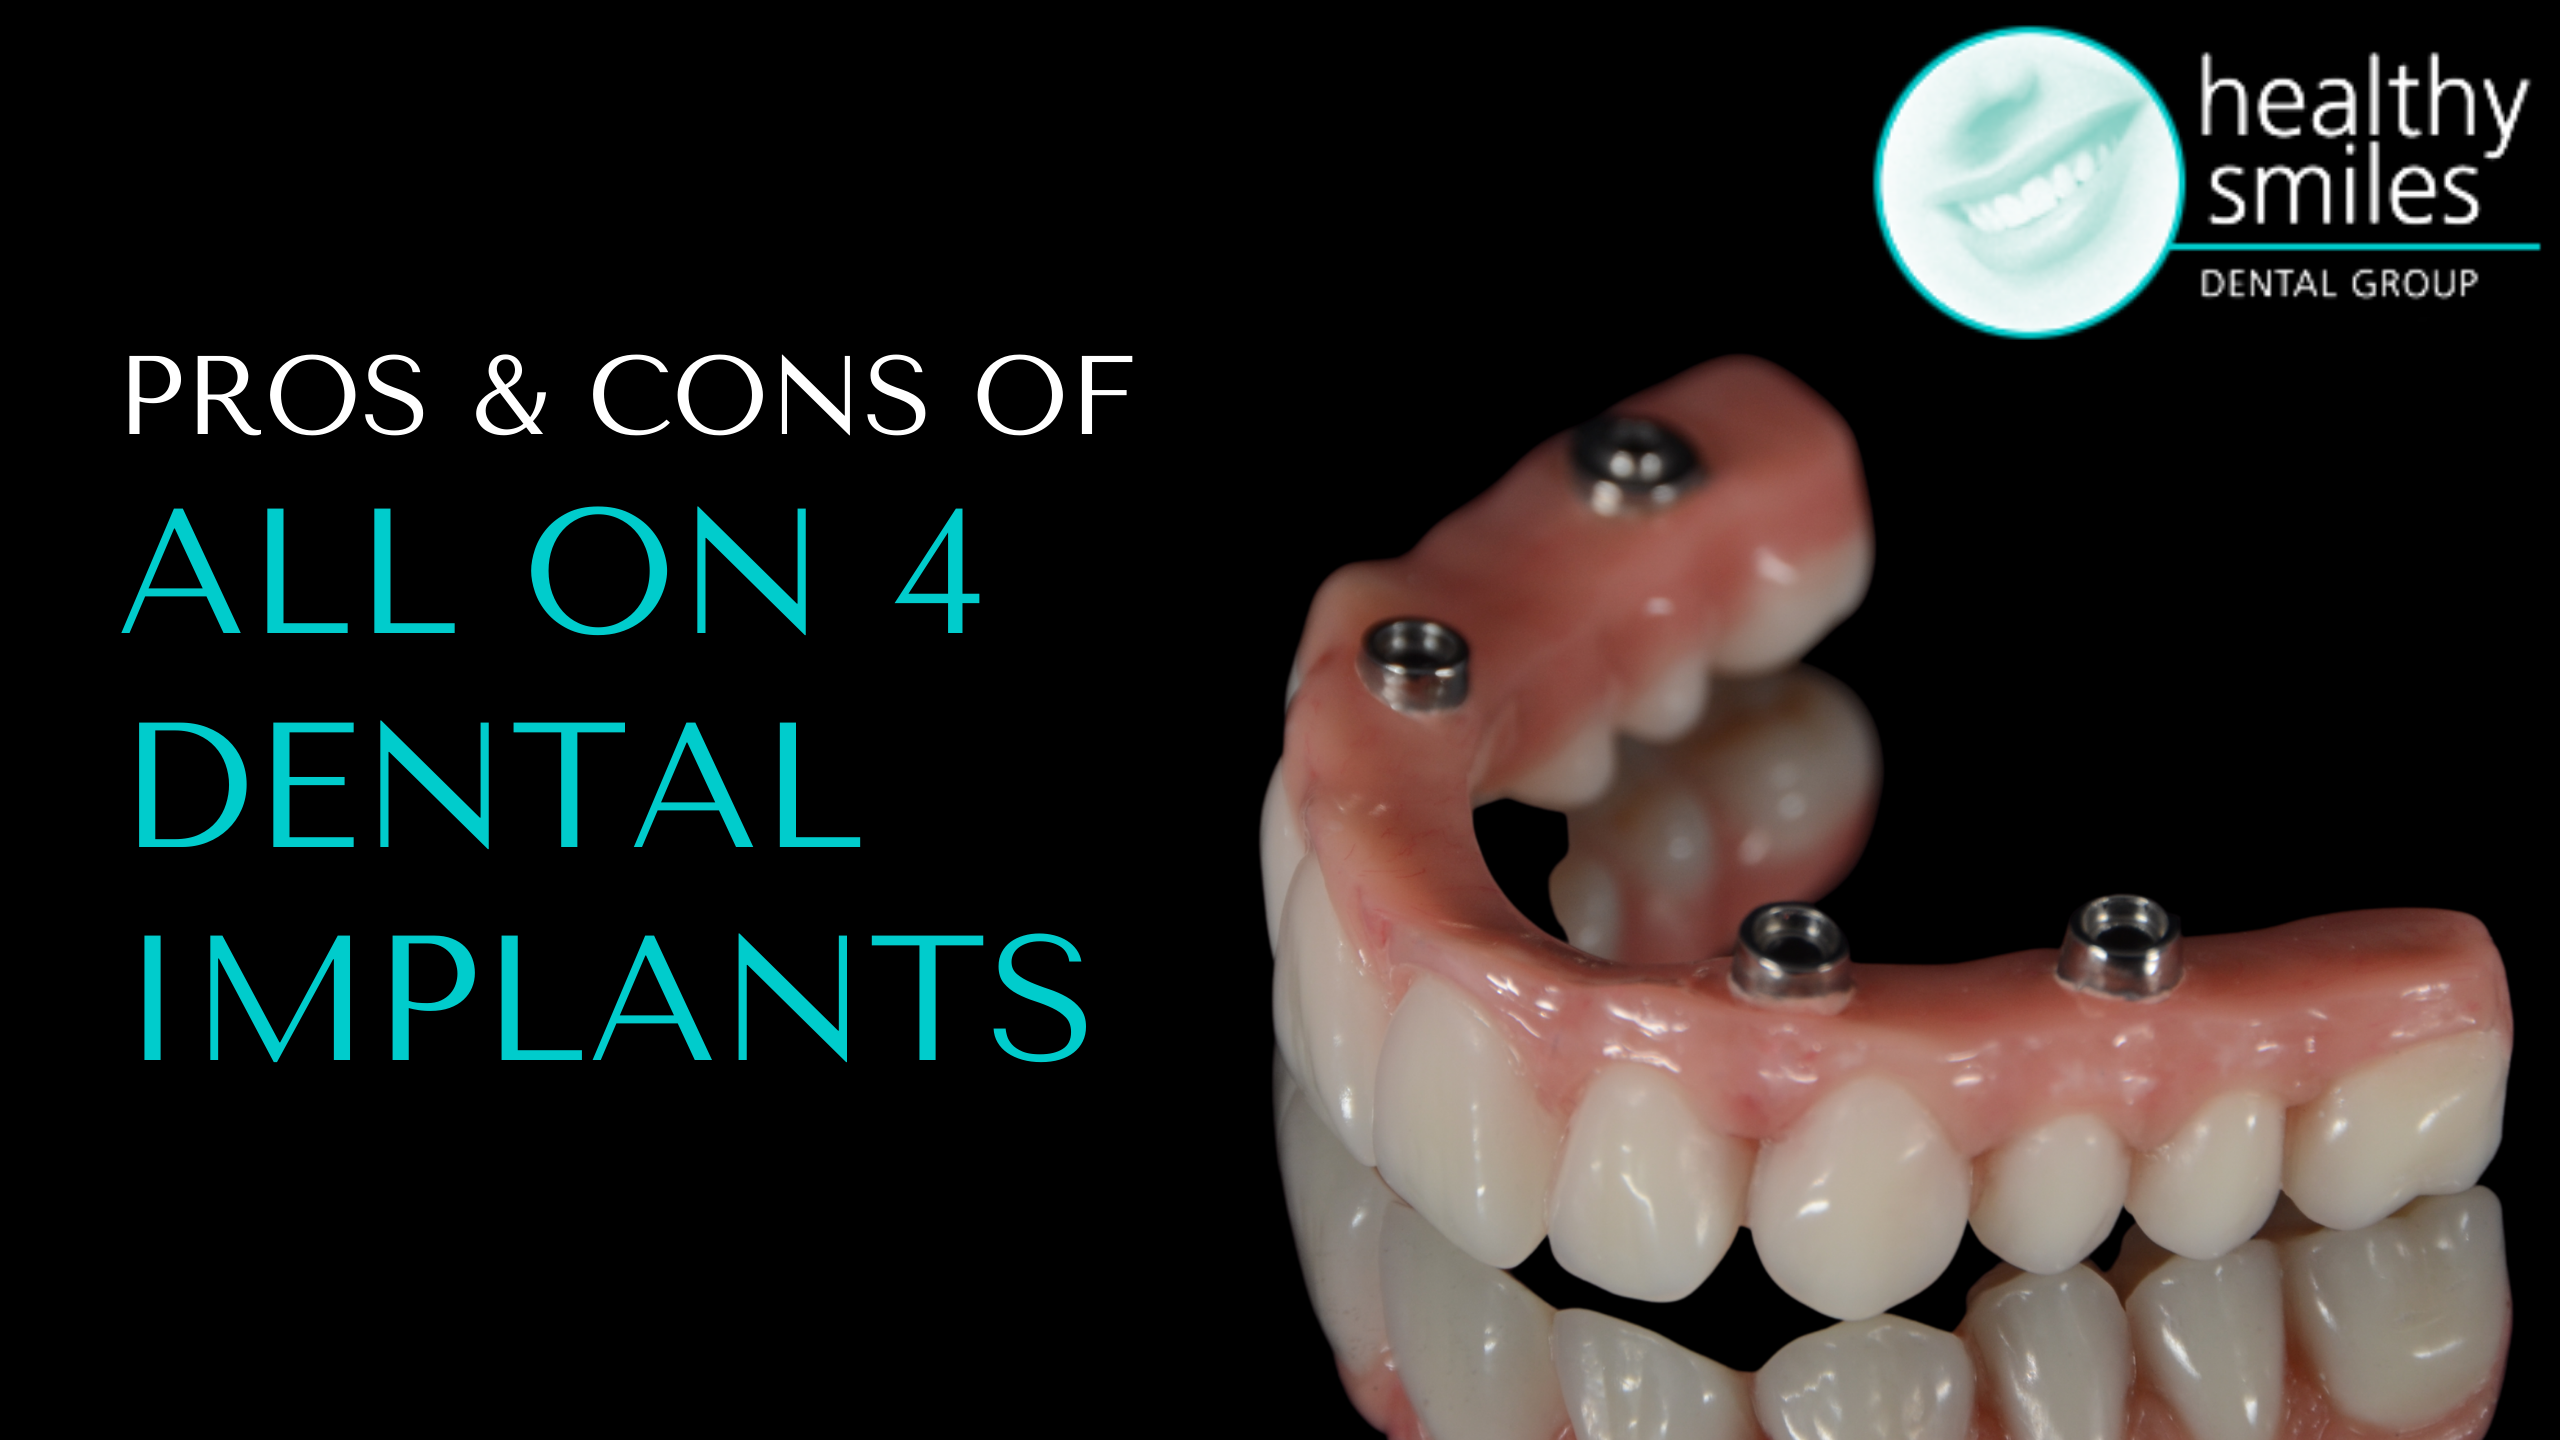 The Pros and Cons of All-on-4 Dental Implants